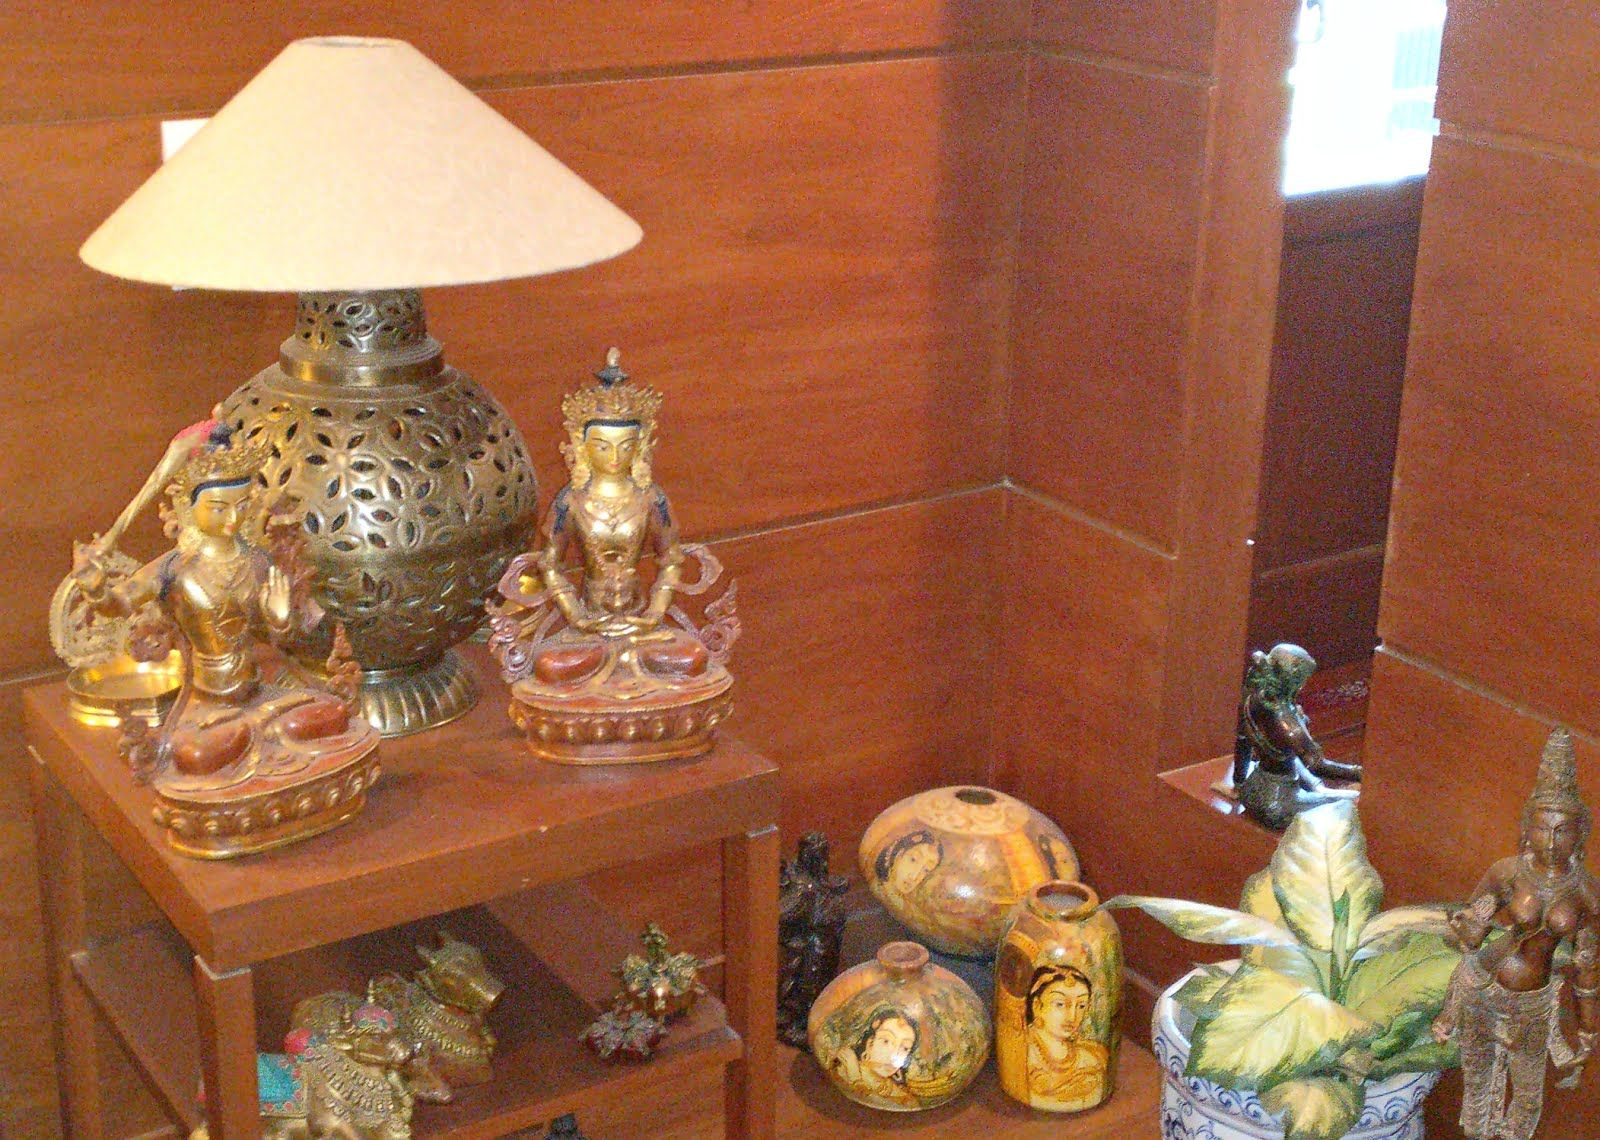 19+ Indian arts and crafts near me info